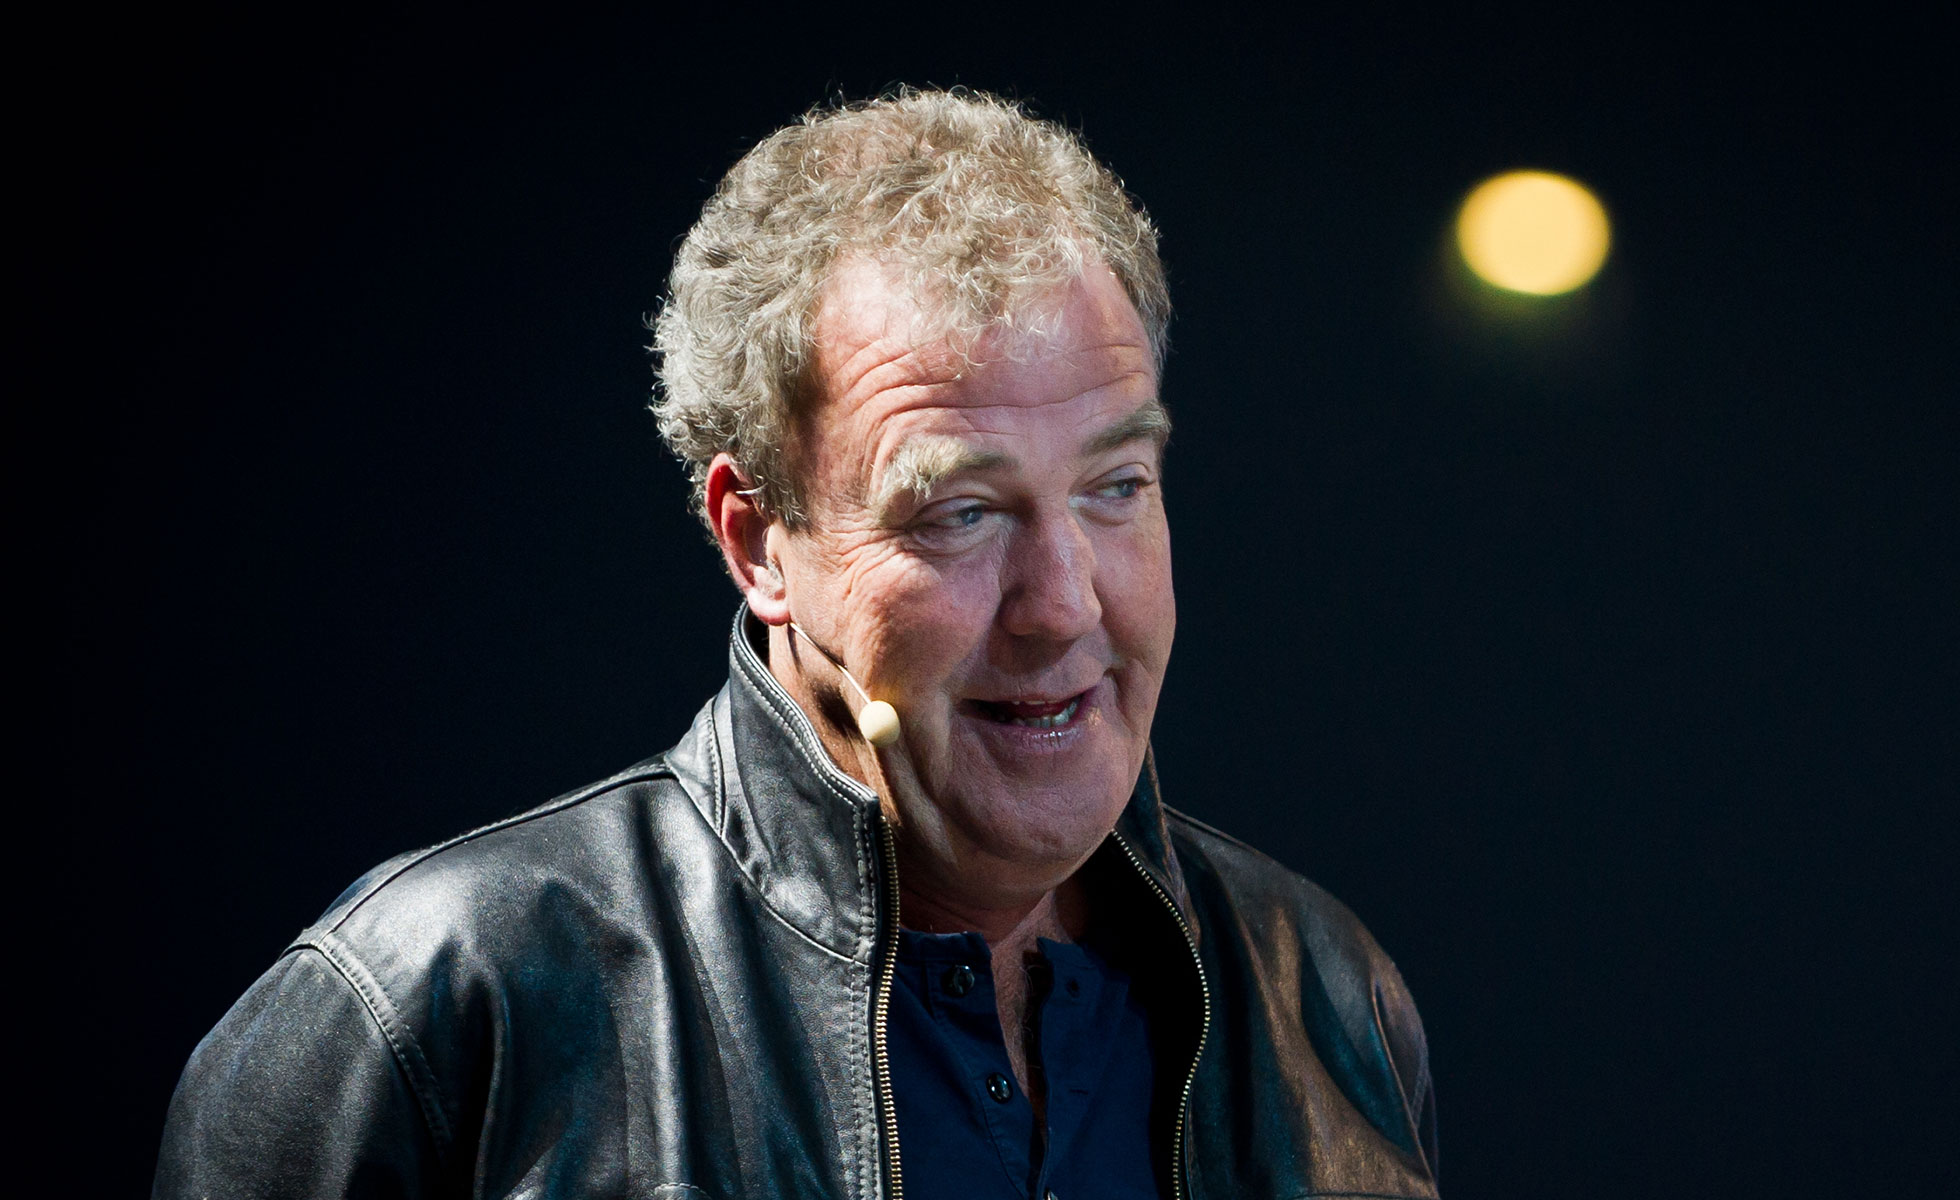 Jeremy Clarkson suspended from Top Gear